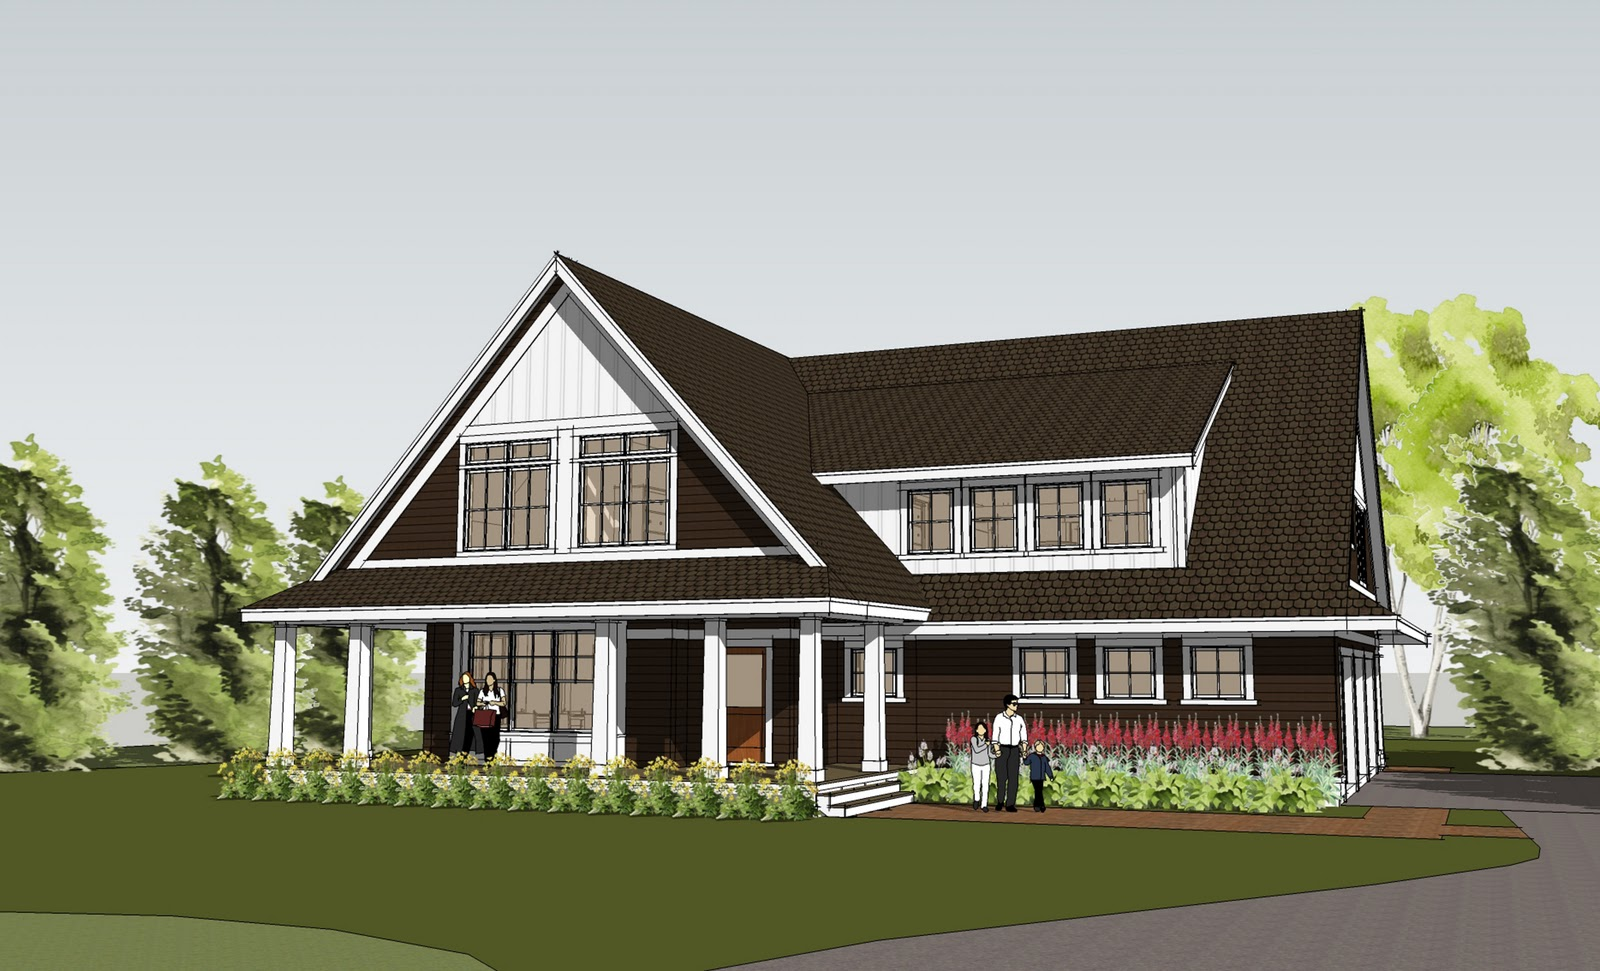 Simply elegant home designs blog new simple yet dramatic Elegant farmhouse plans